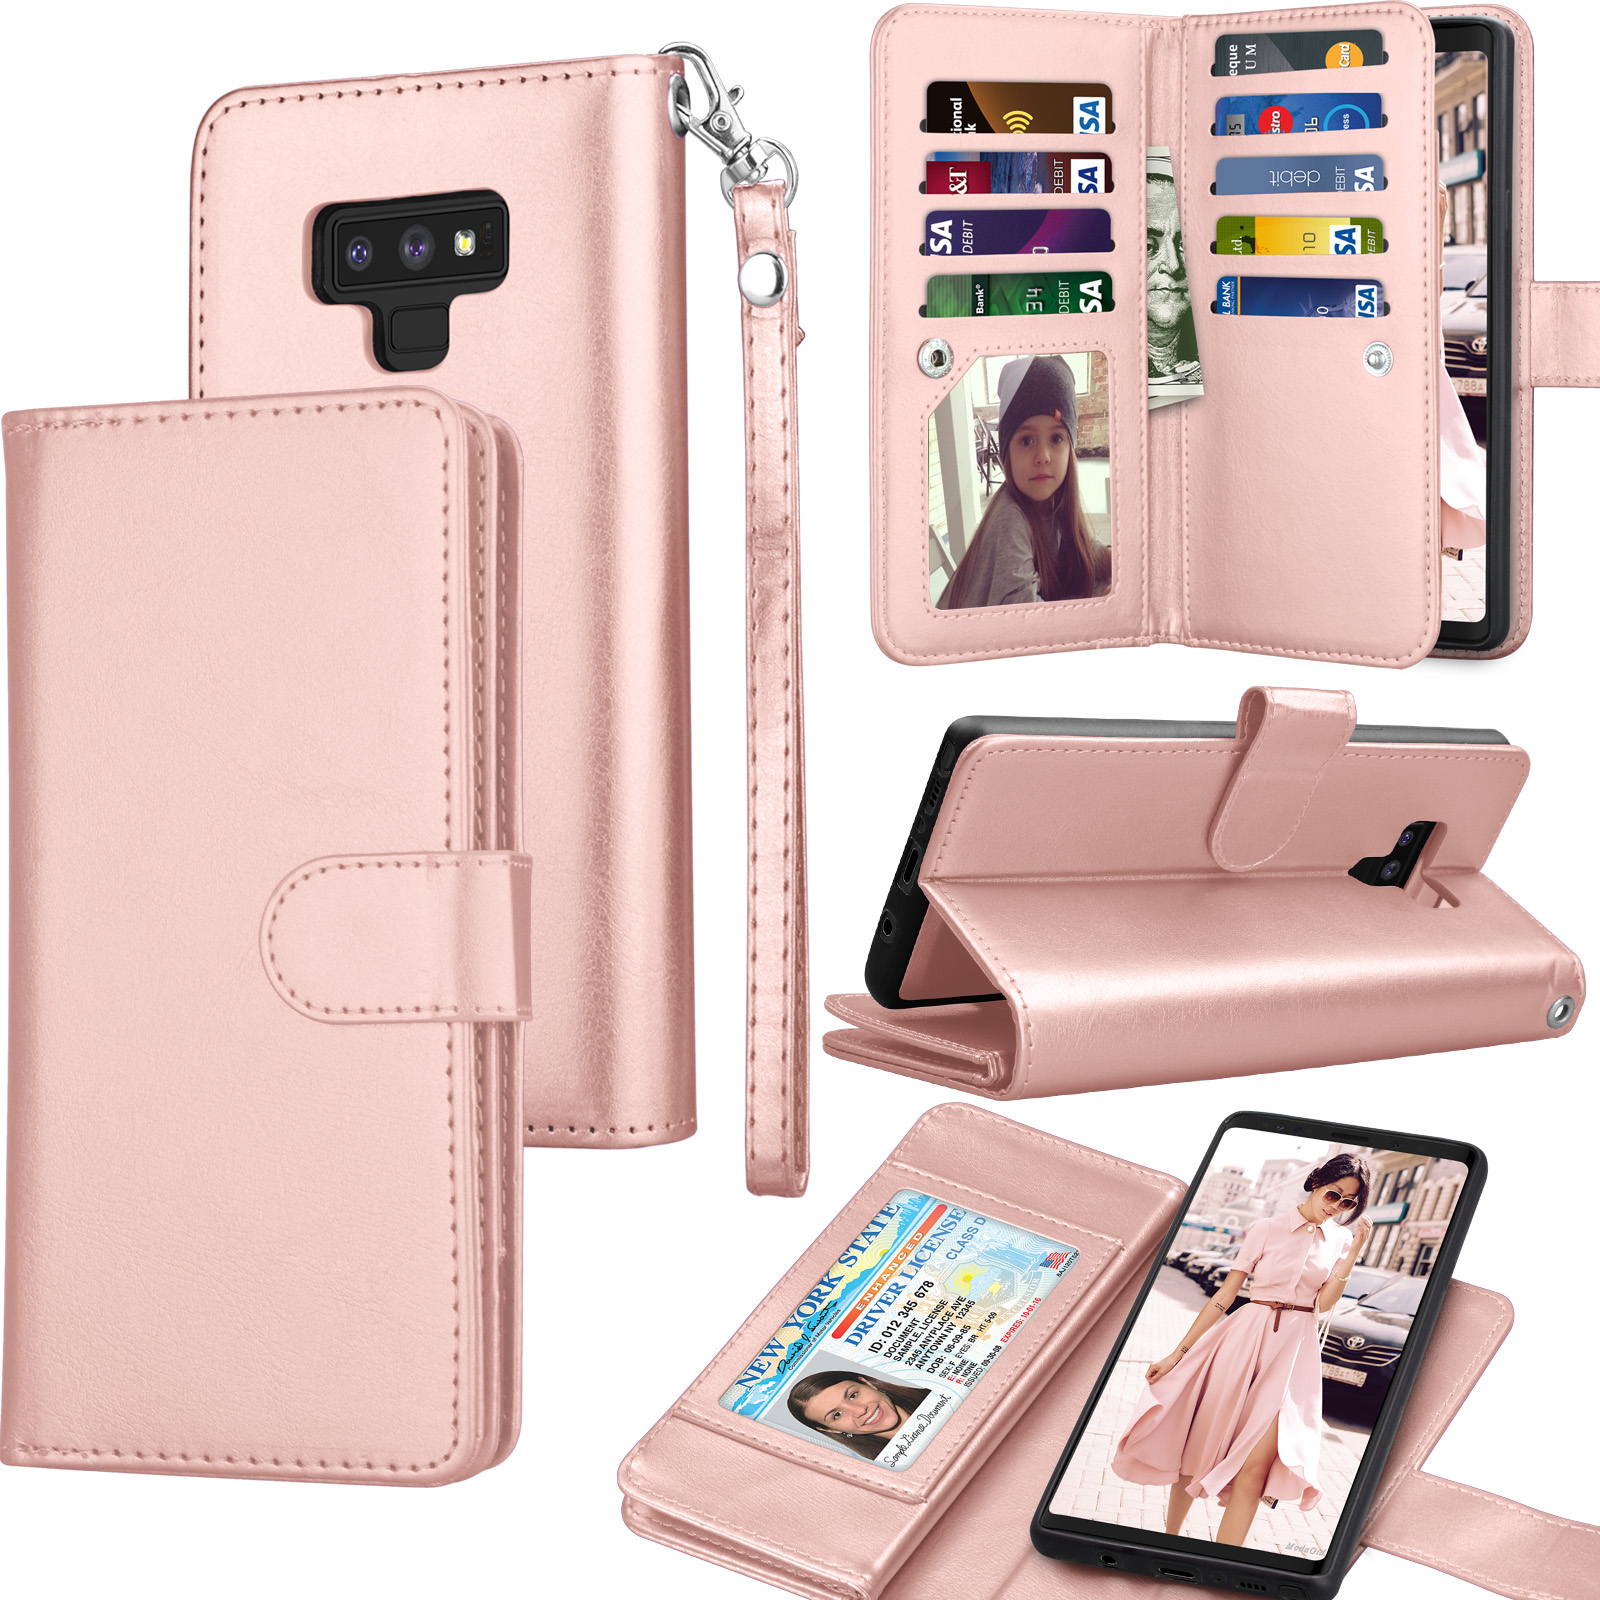 Tekcoo For Galaxy Note 9 Case, Tekcoo For Samsung Note 9 Wallet Case, PU Leather ID Cash Credit Card Slots Holder Carrying Folio Flip Cover [Detachable Magnetic Hard Case] & Kickstand - Rose Gold